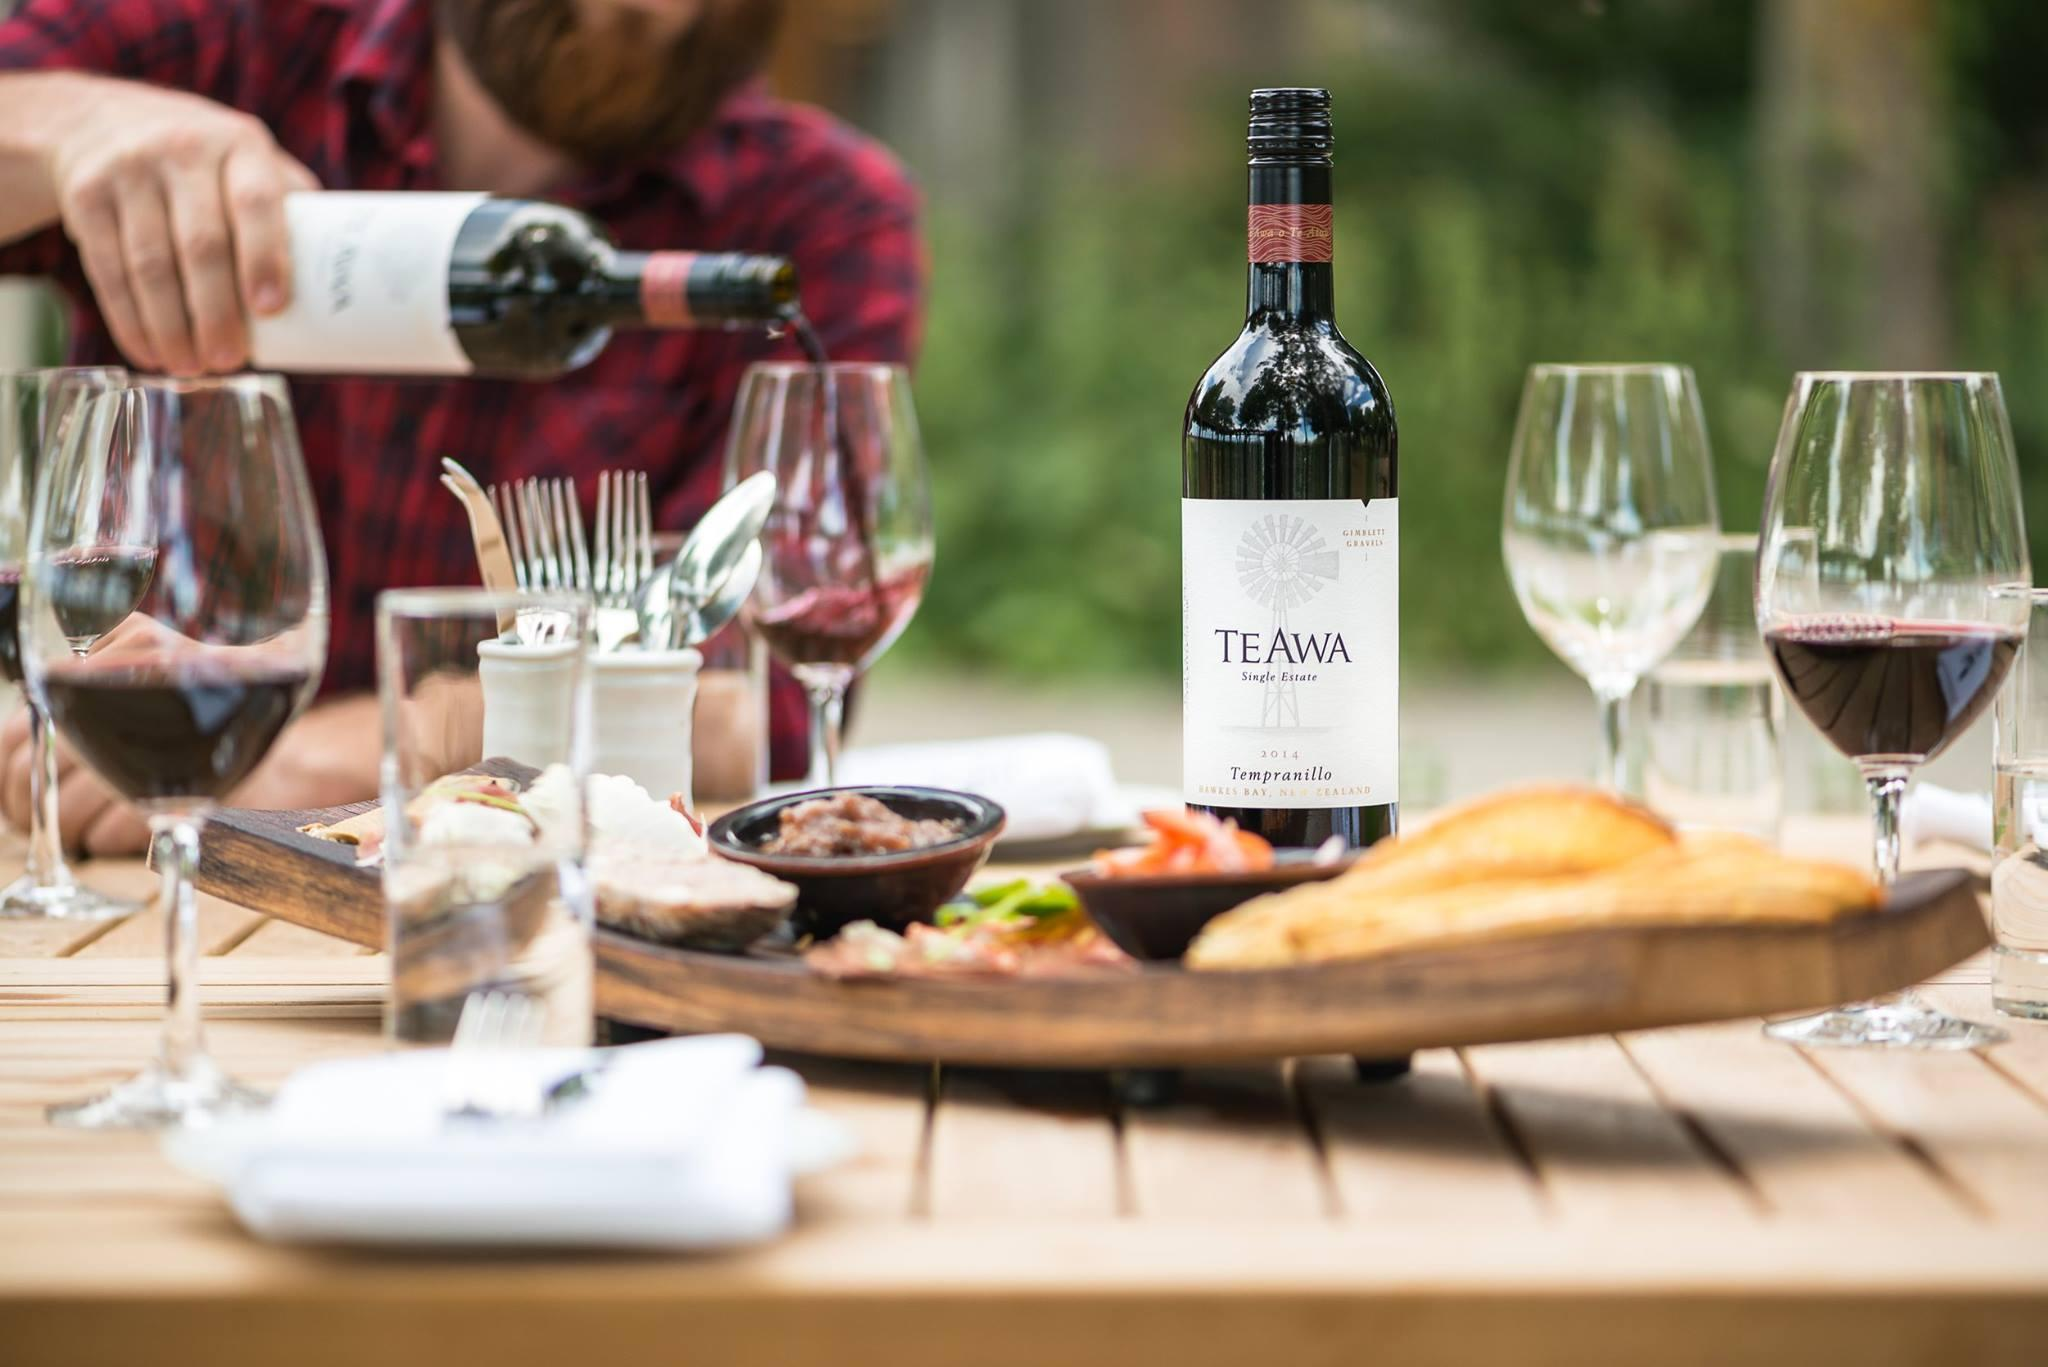 Te Awa Winery and Restaurant